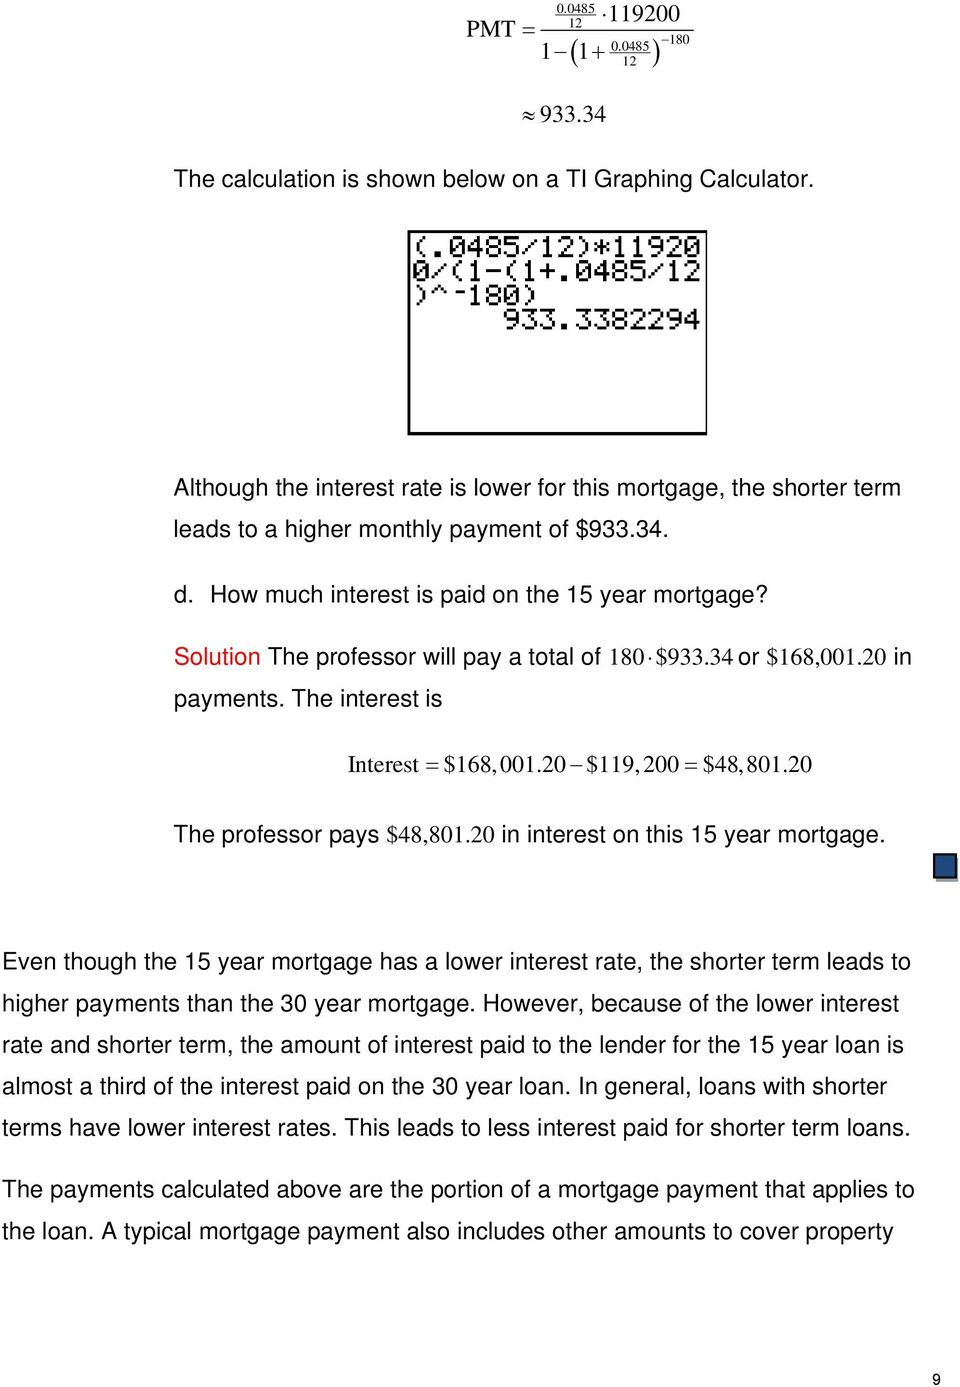 Solutio The professor will pay a total of 180 $933.34 or $168,001.20 i paymets. The iterest is Iterest $168, 001.20 $119, 200 $48,801.20 The professor pays $48,801.